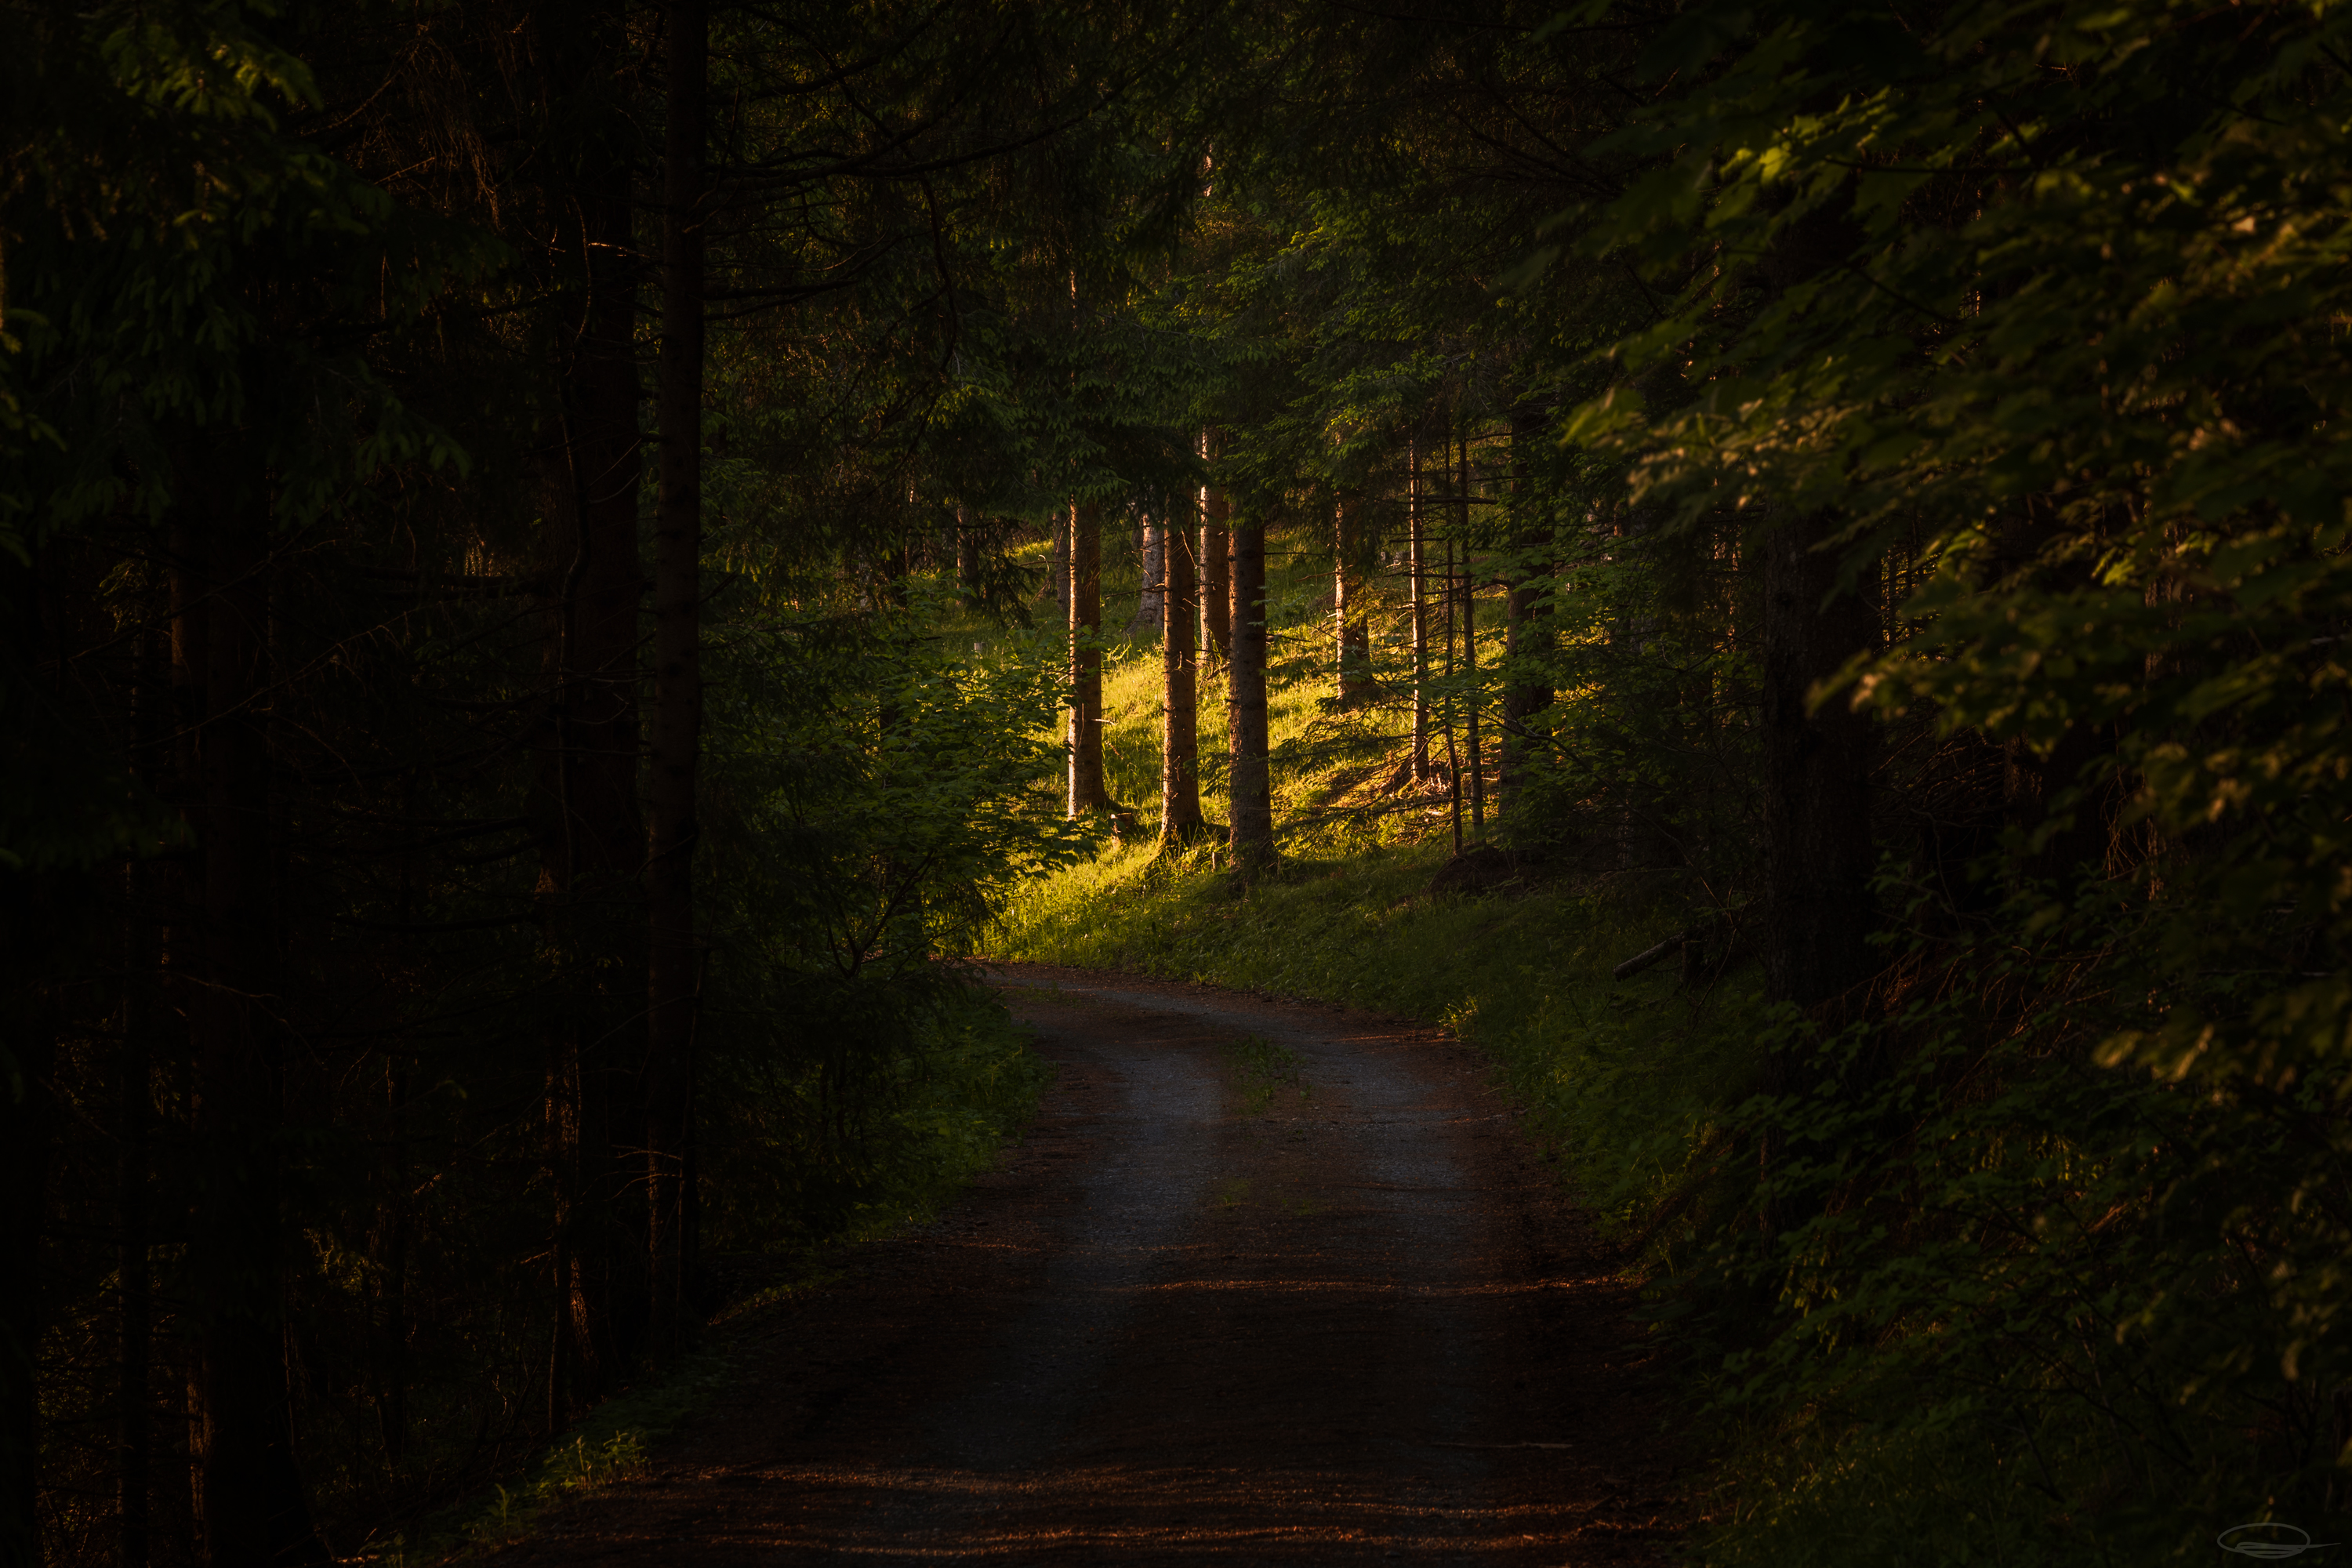 Every dark forest path ends in a clearing at some point